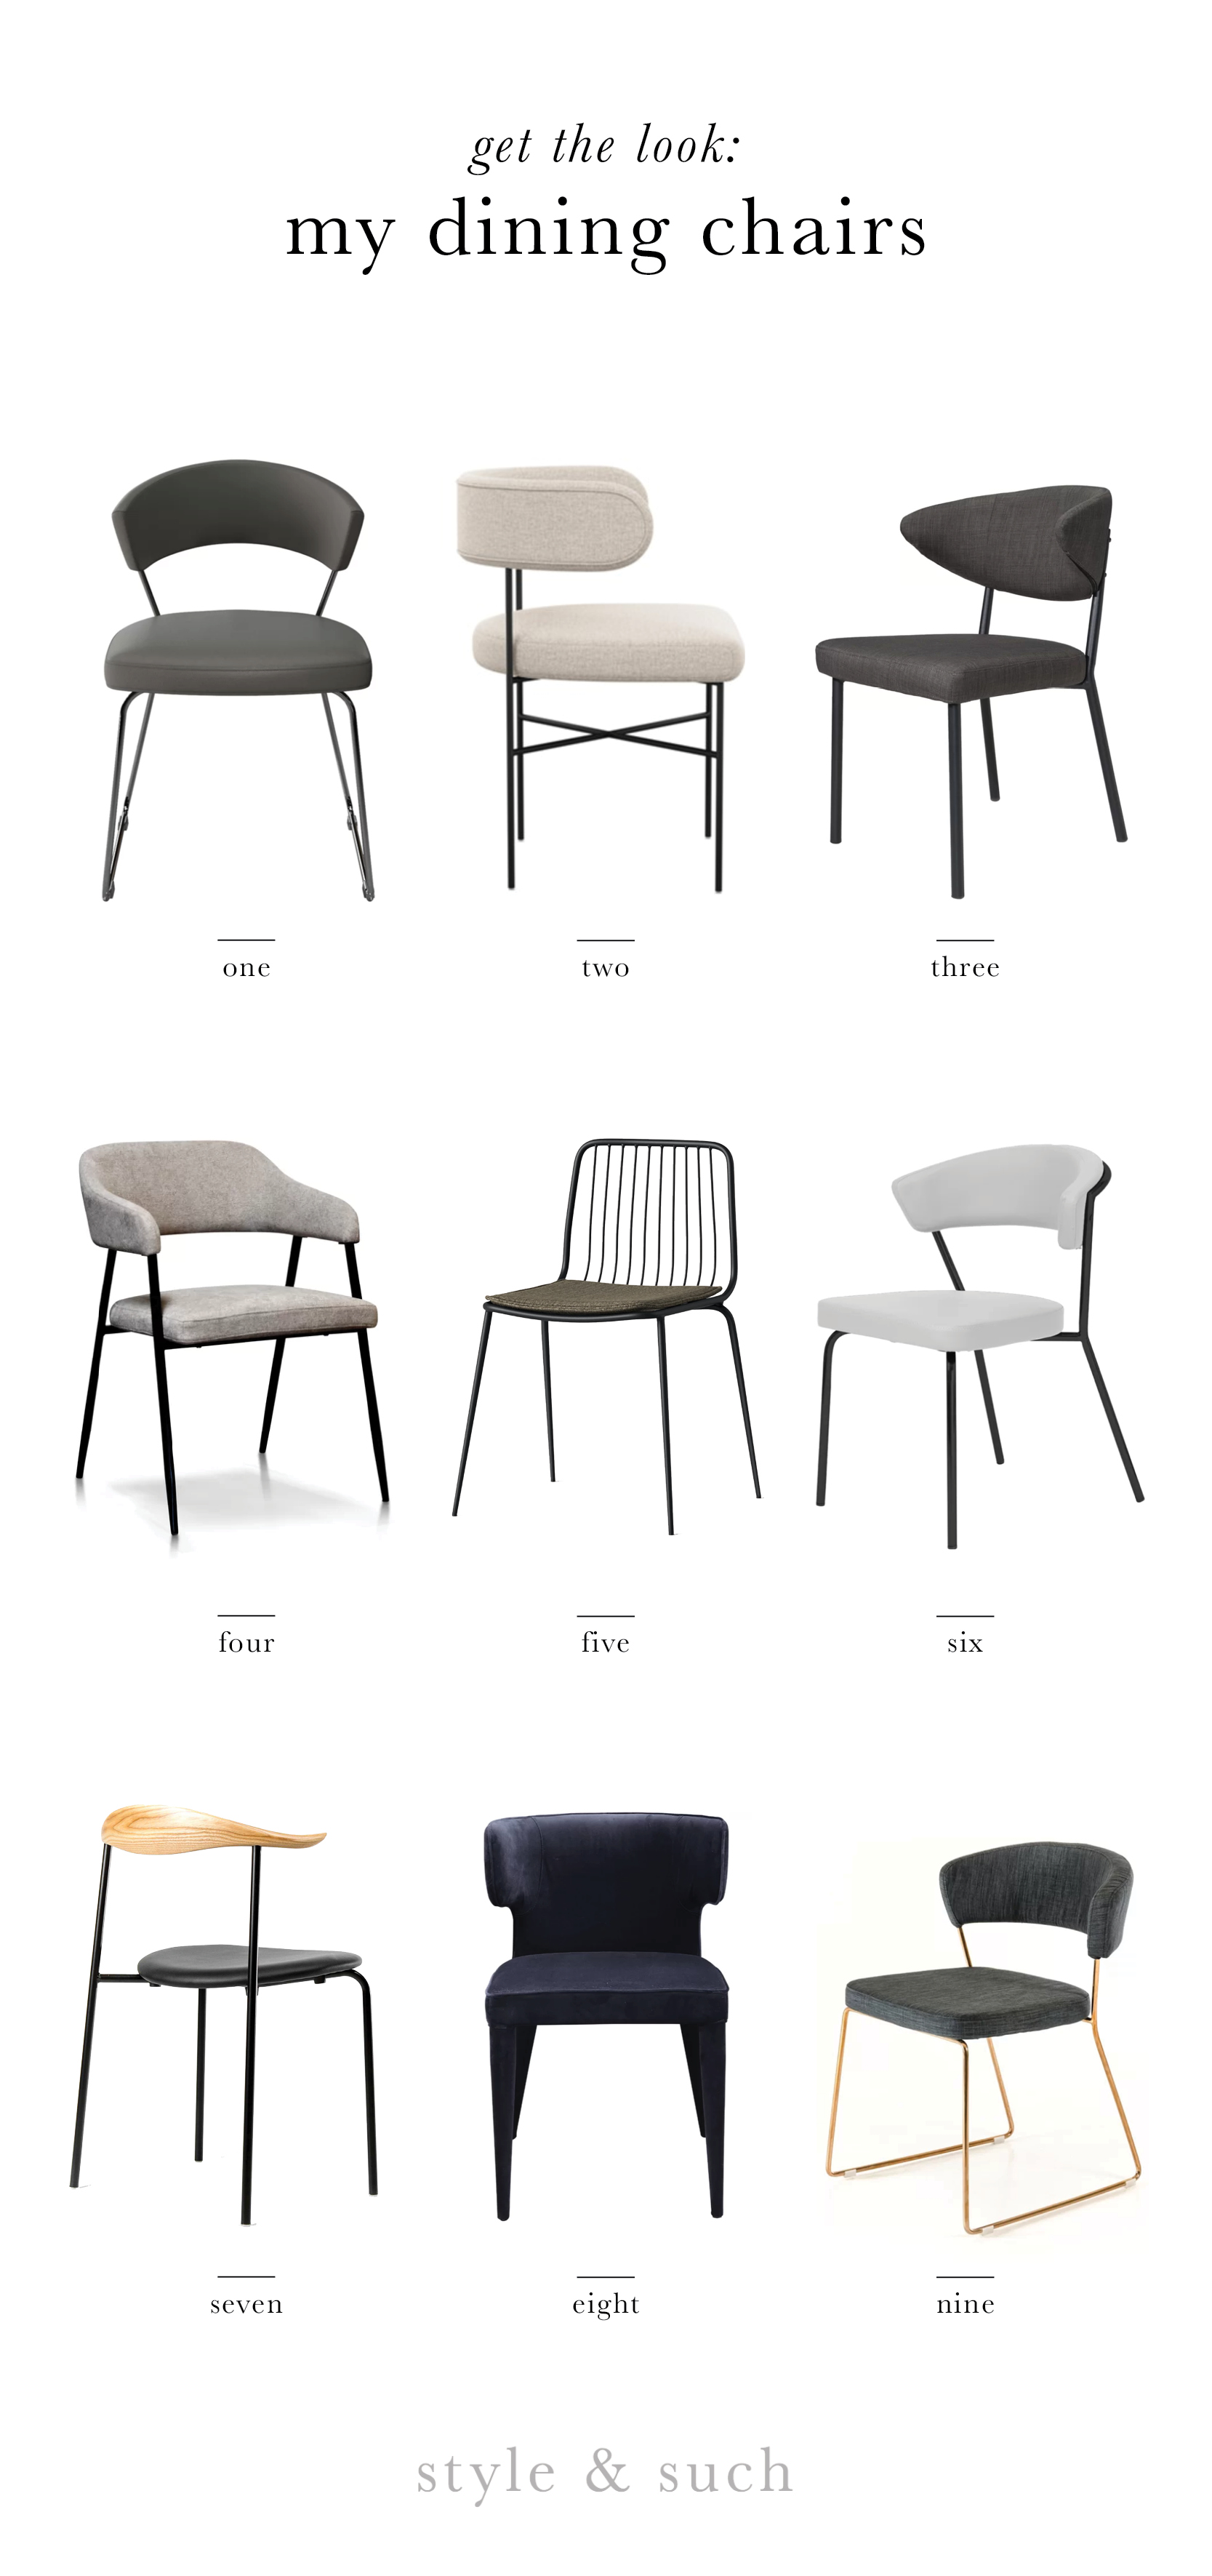 1.  Gainsborough Dining Chair  | 2.  Audrey Dining Chair  | 3.  Felicia Dining Chair  | 4.  Tyshawn Dining Chair   | 5.  Sondra Square Dining Chair  | 6.  Viviana Dining Chair  | 7.  CH88 Dining Chair   | 8.  Kartik Dining Chair  | 9.  Lipscomb Dining Chair